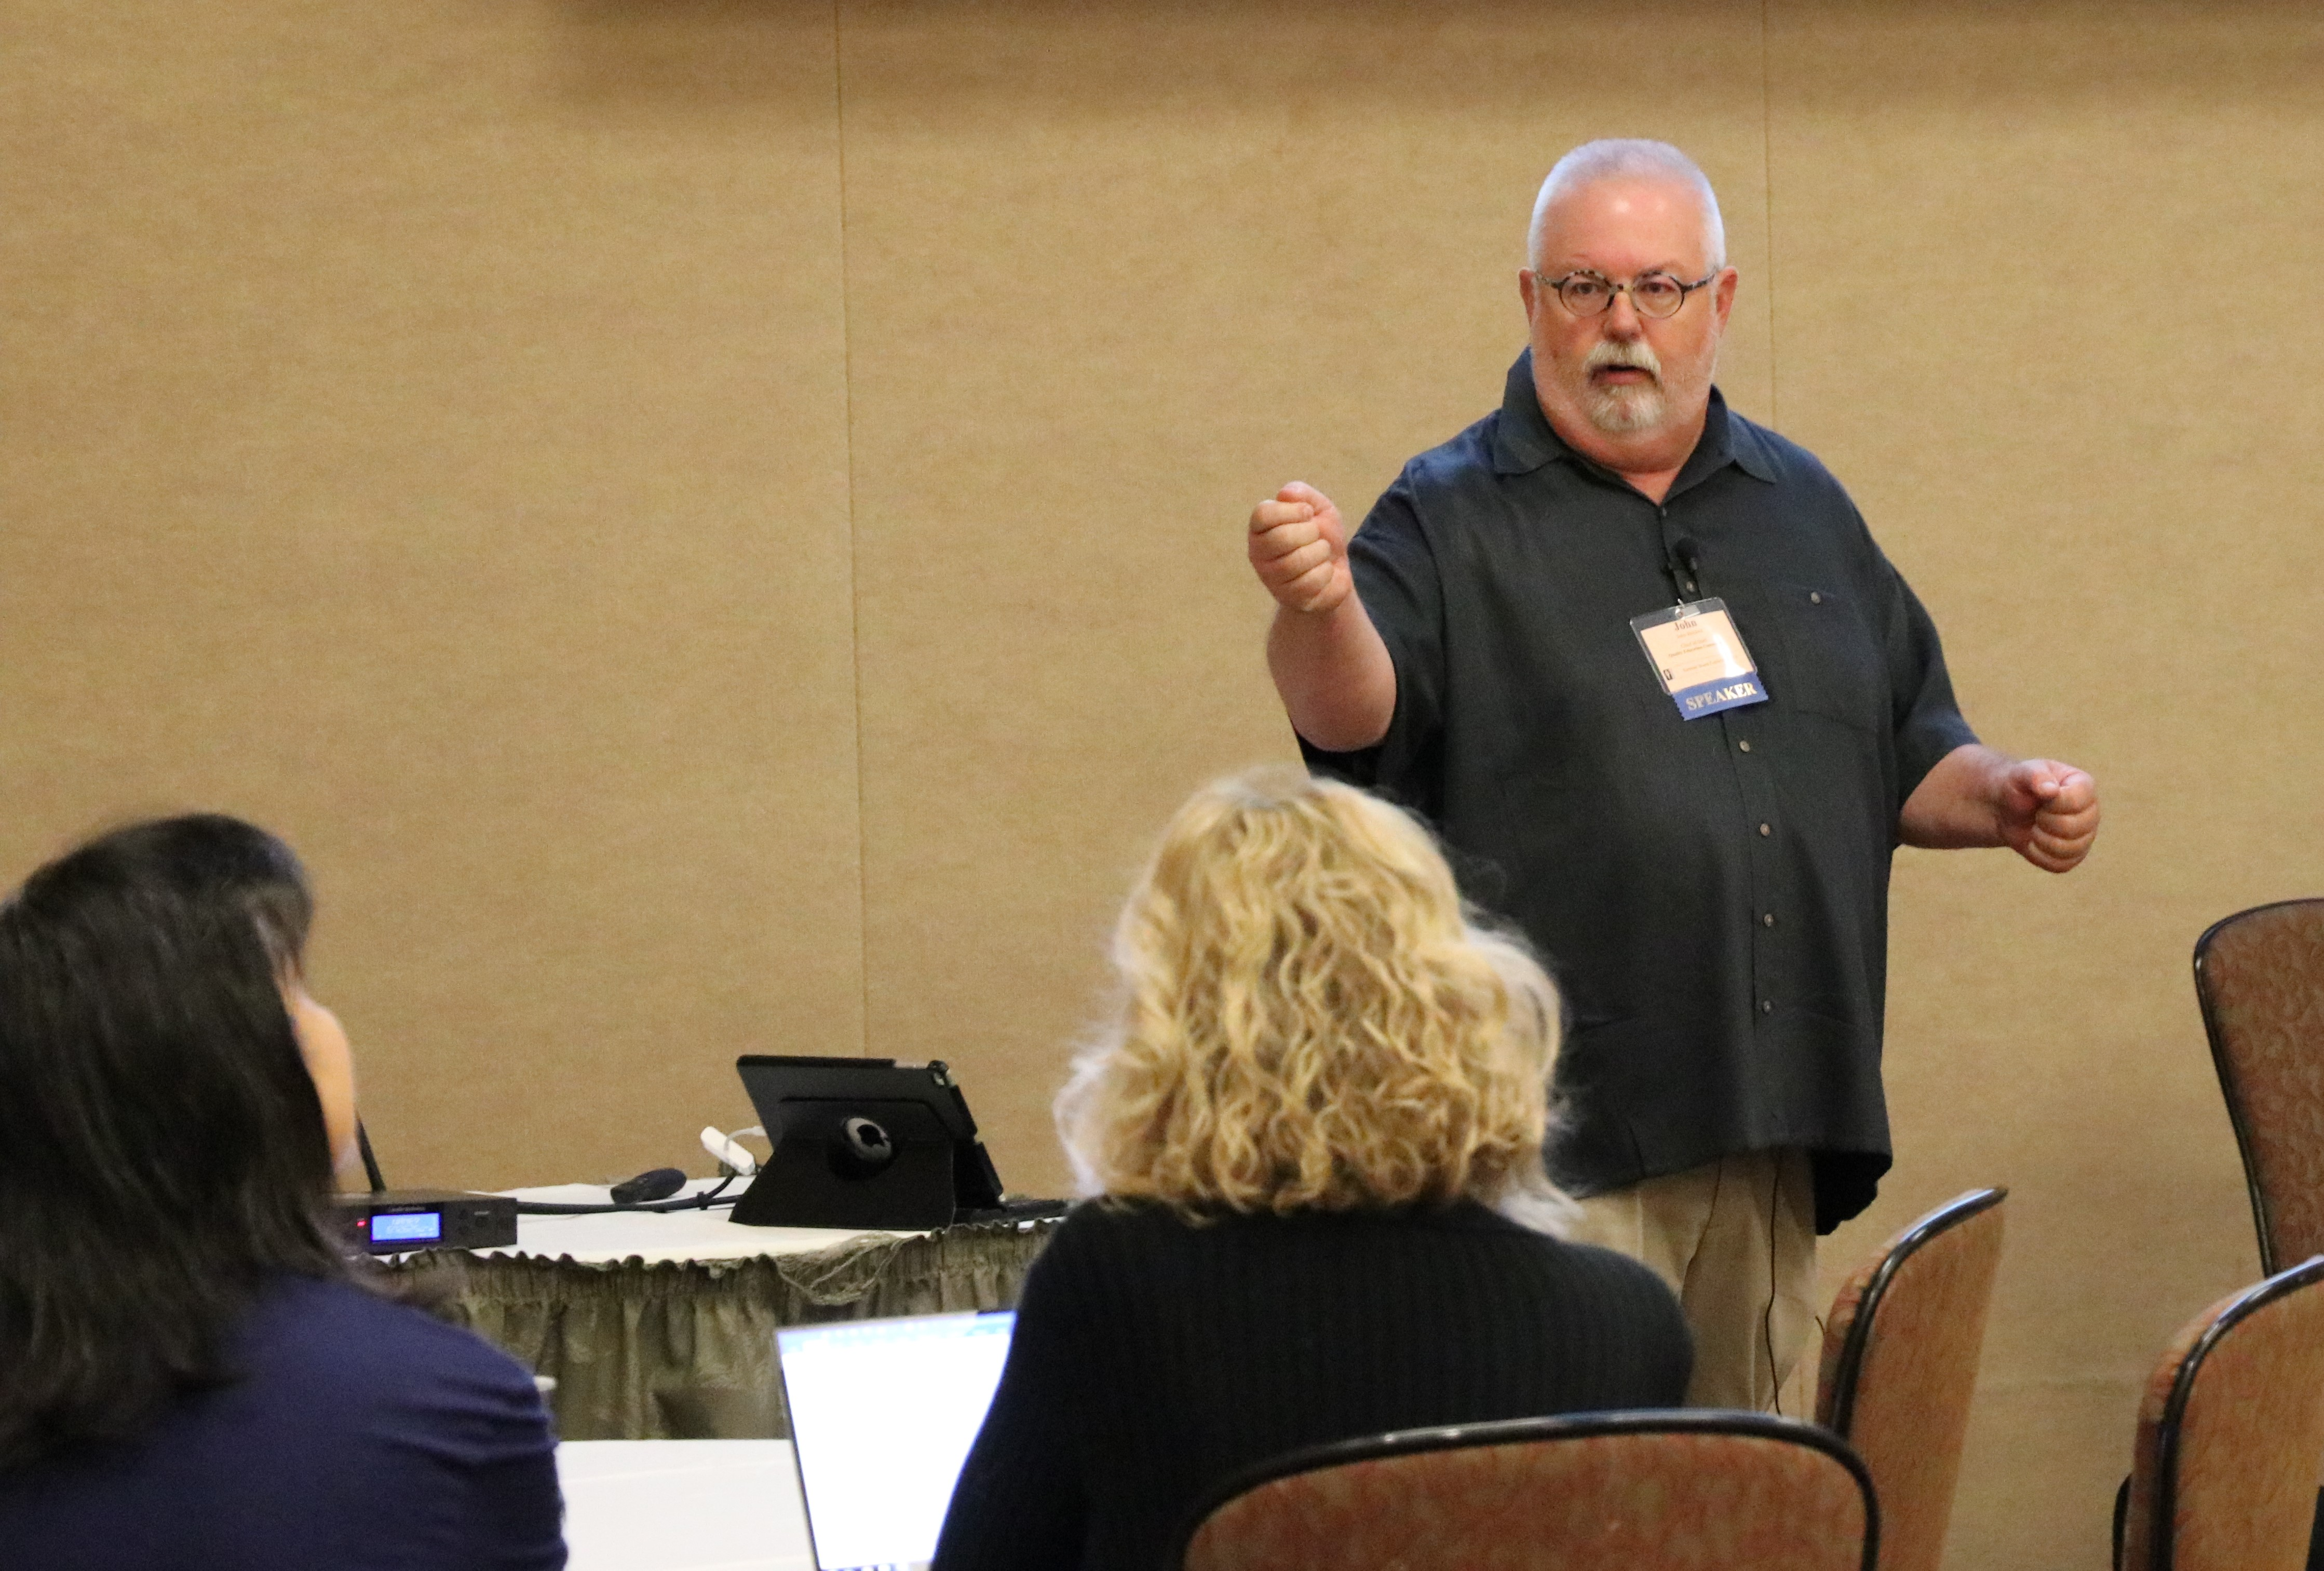 Quality Education Commission member John Rexford told school board members about the Quality Education Model at OSBA's July conference in a session on chronic underfunding of K-12 public education in Oregon.